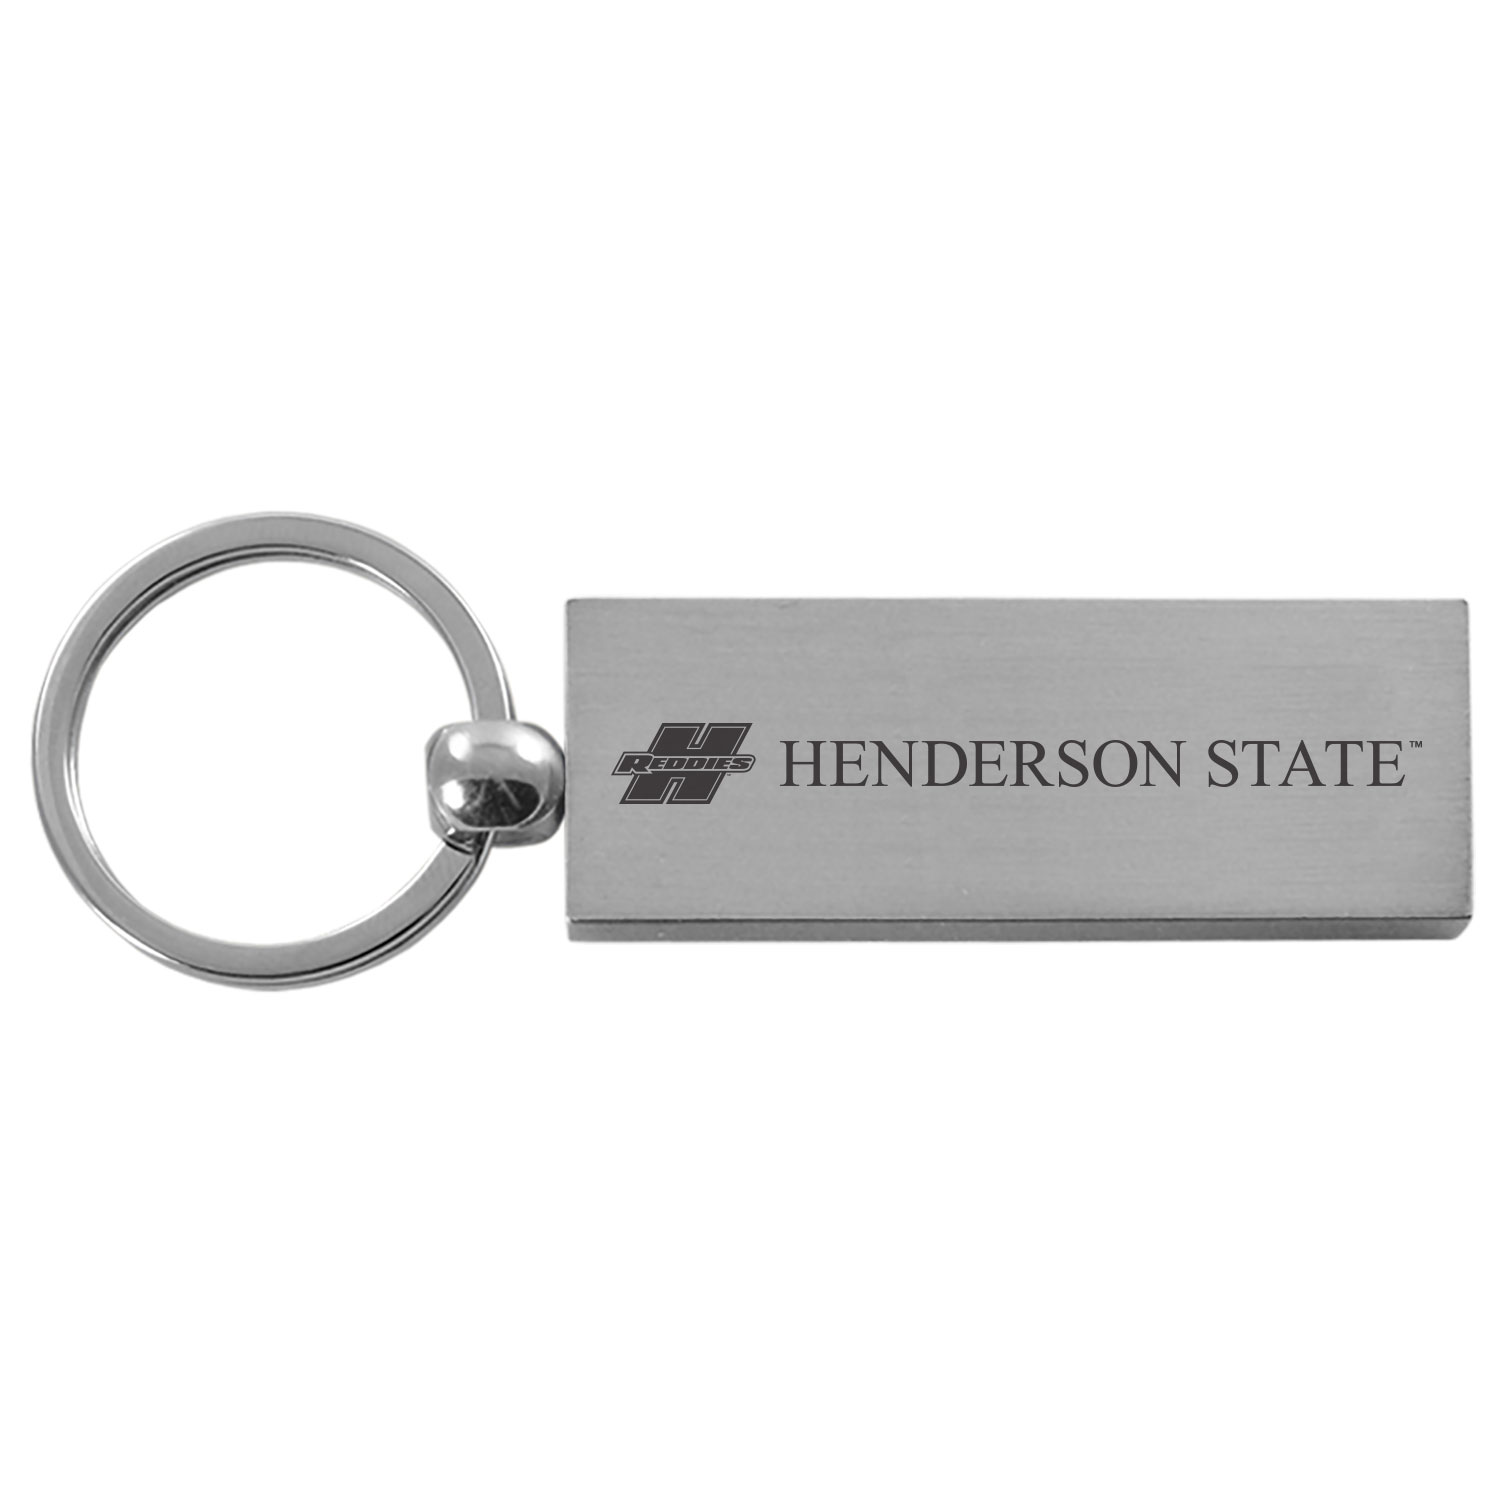 Henderson State Rectangle Key Tag